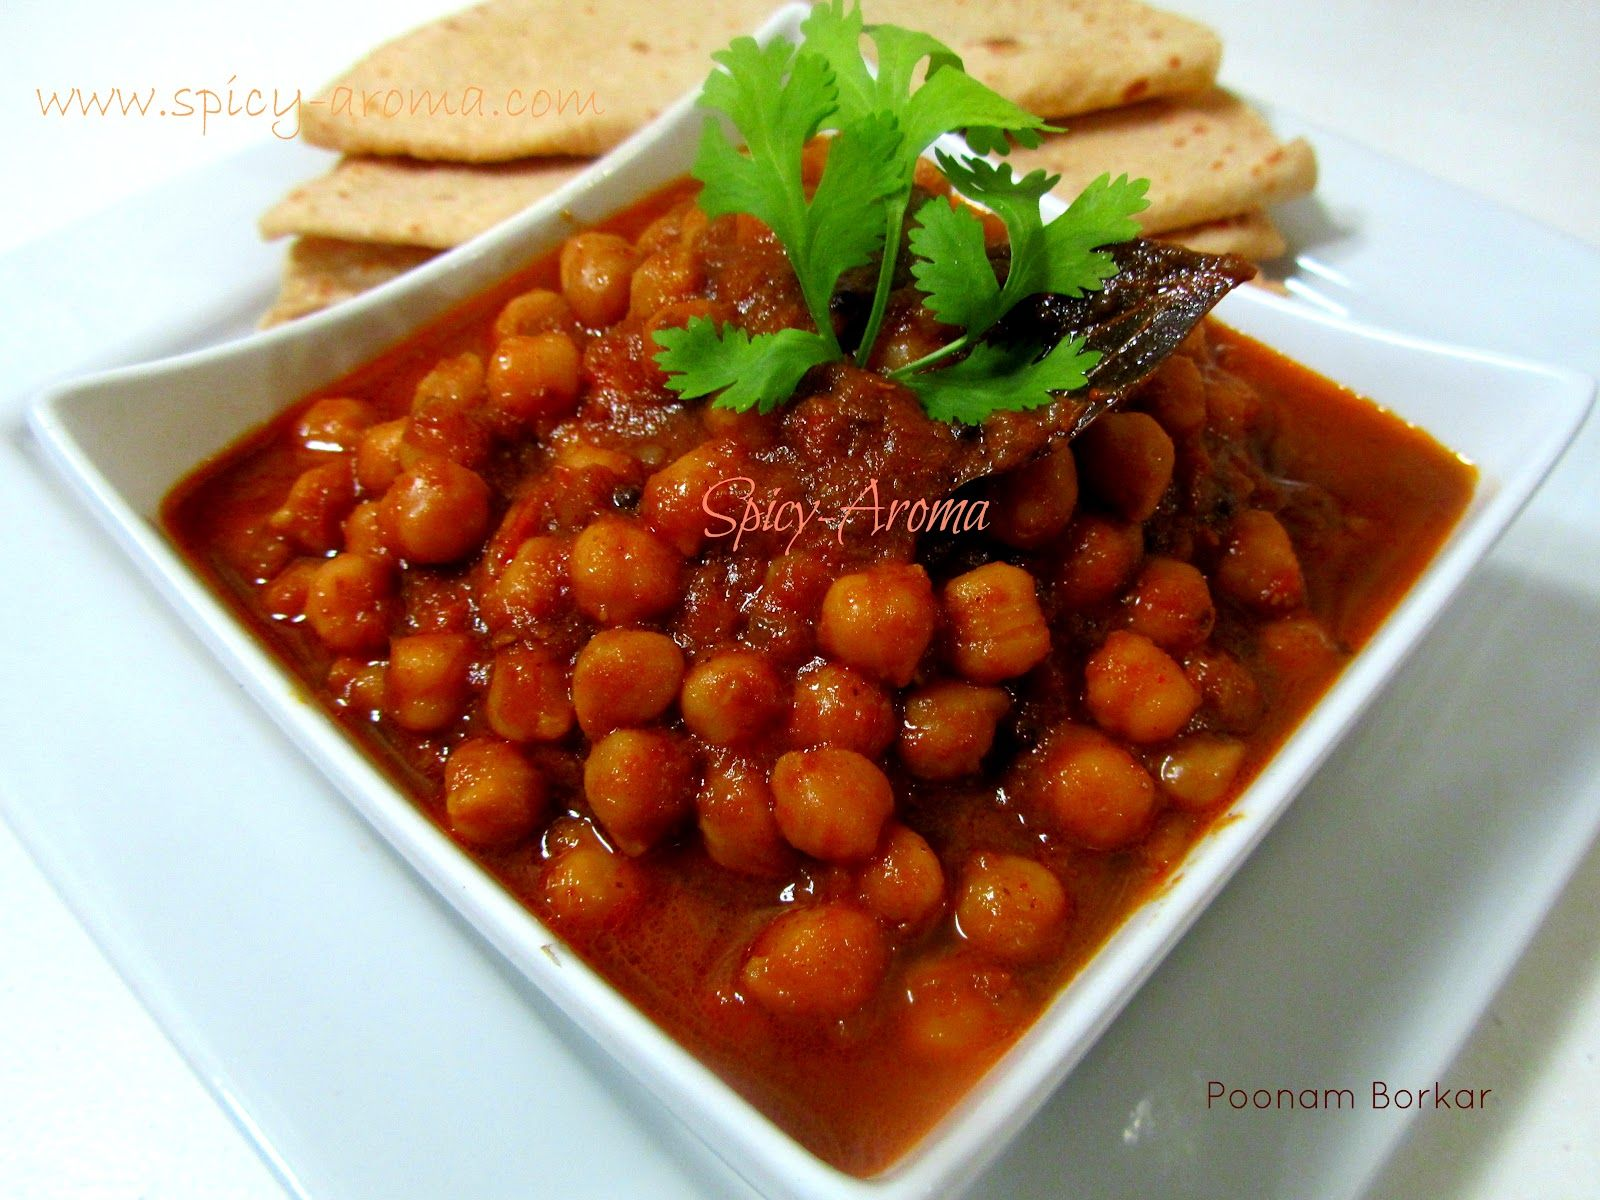 Spicy aroma chana masala chole recipe chickpea curry spicy aroma chana masala chole recipe chickpea curry pressure cooker recipe forumfinder Gallery